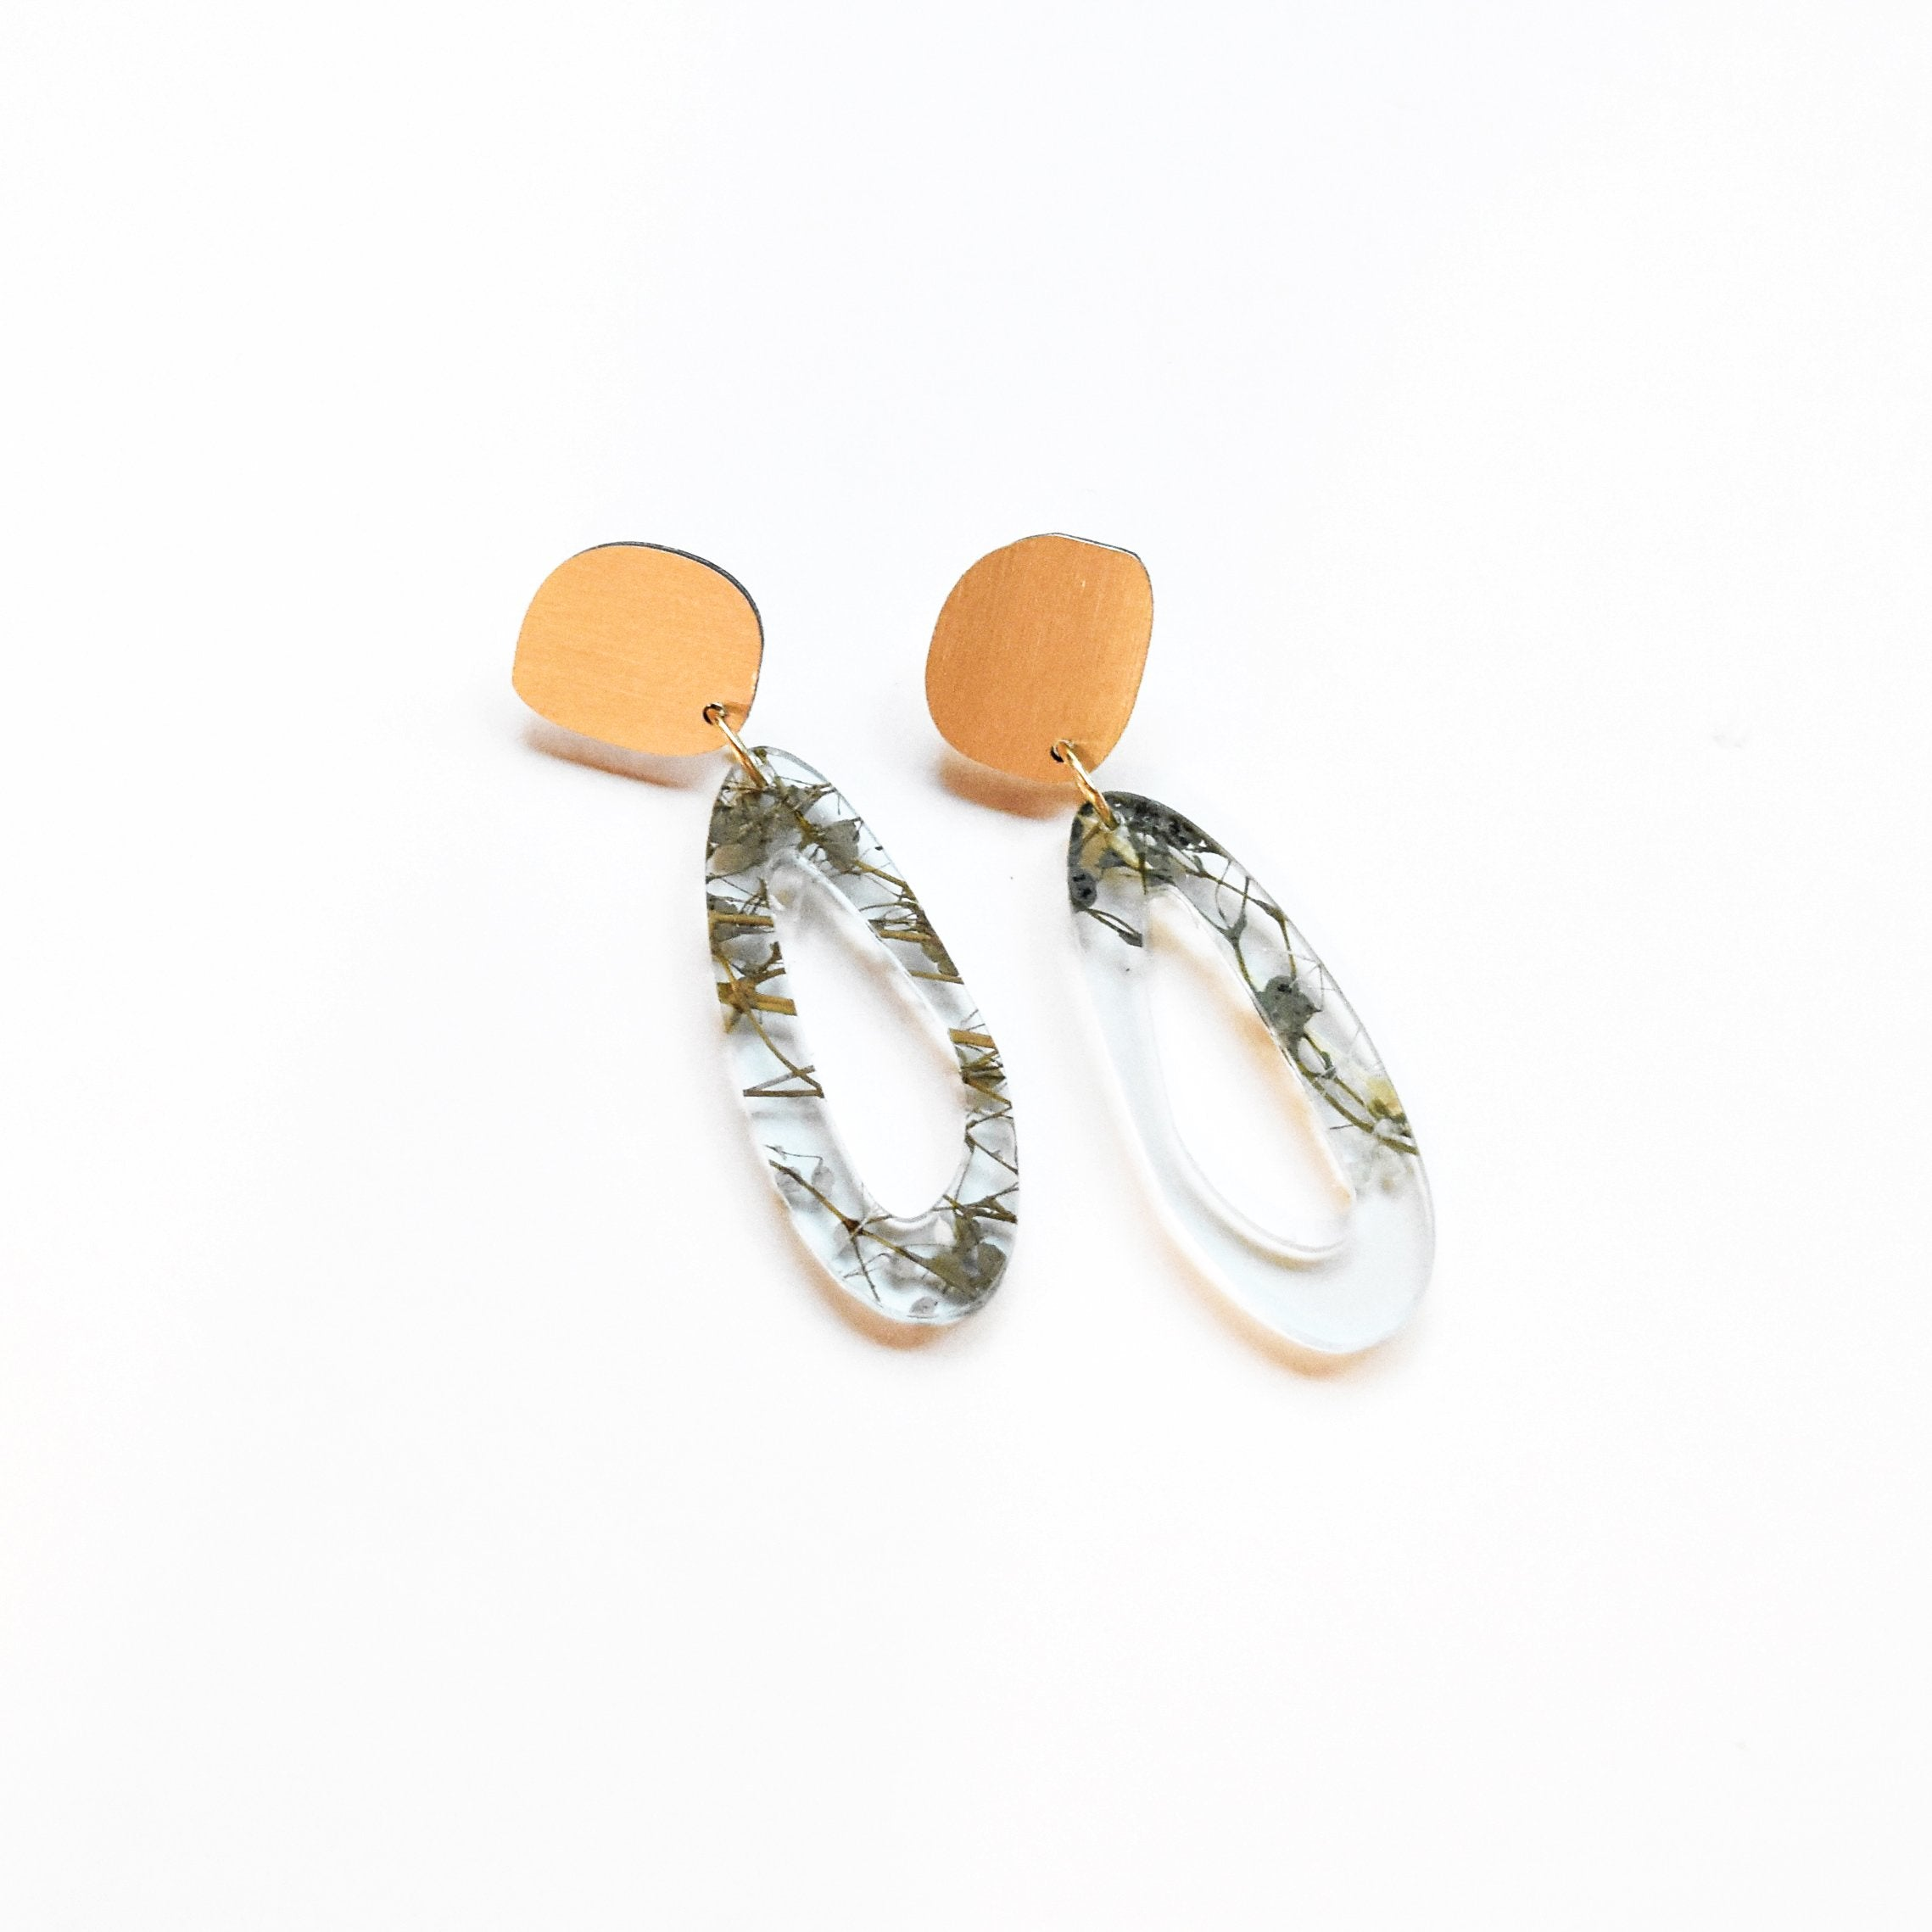 Ecoresin Earrings - Fluid Oval Drop